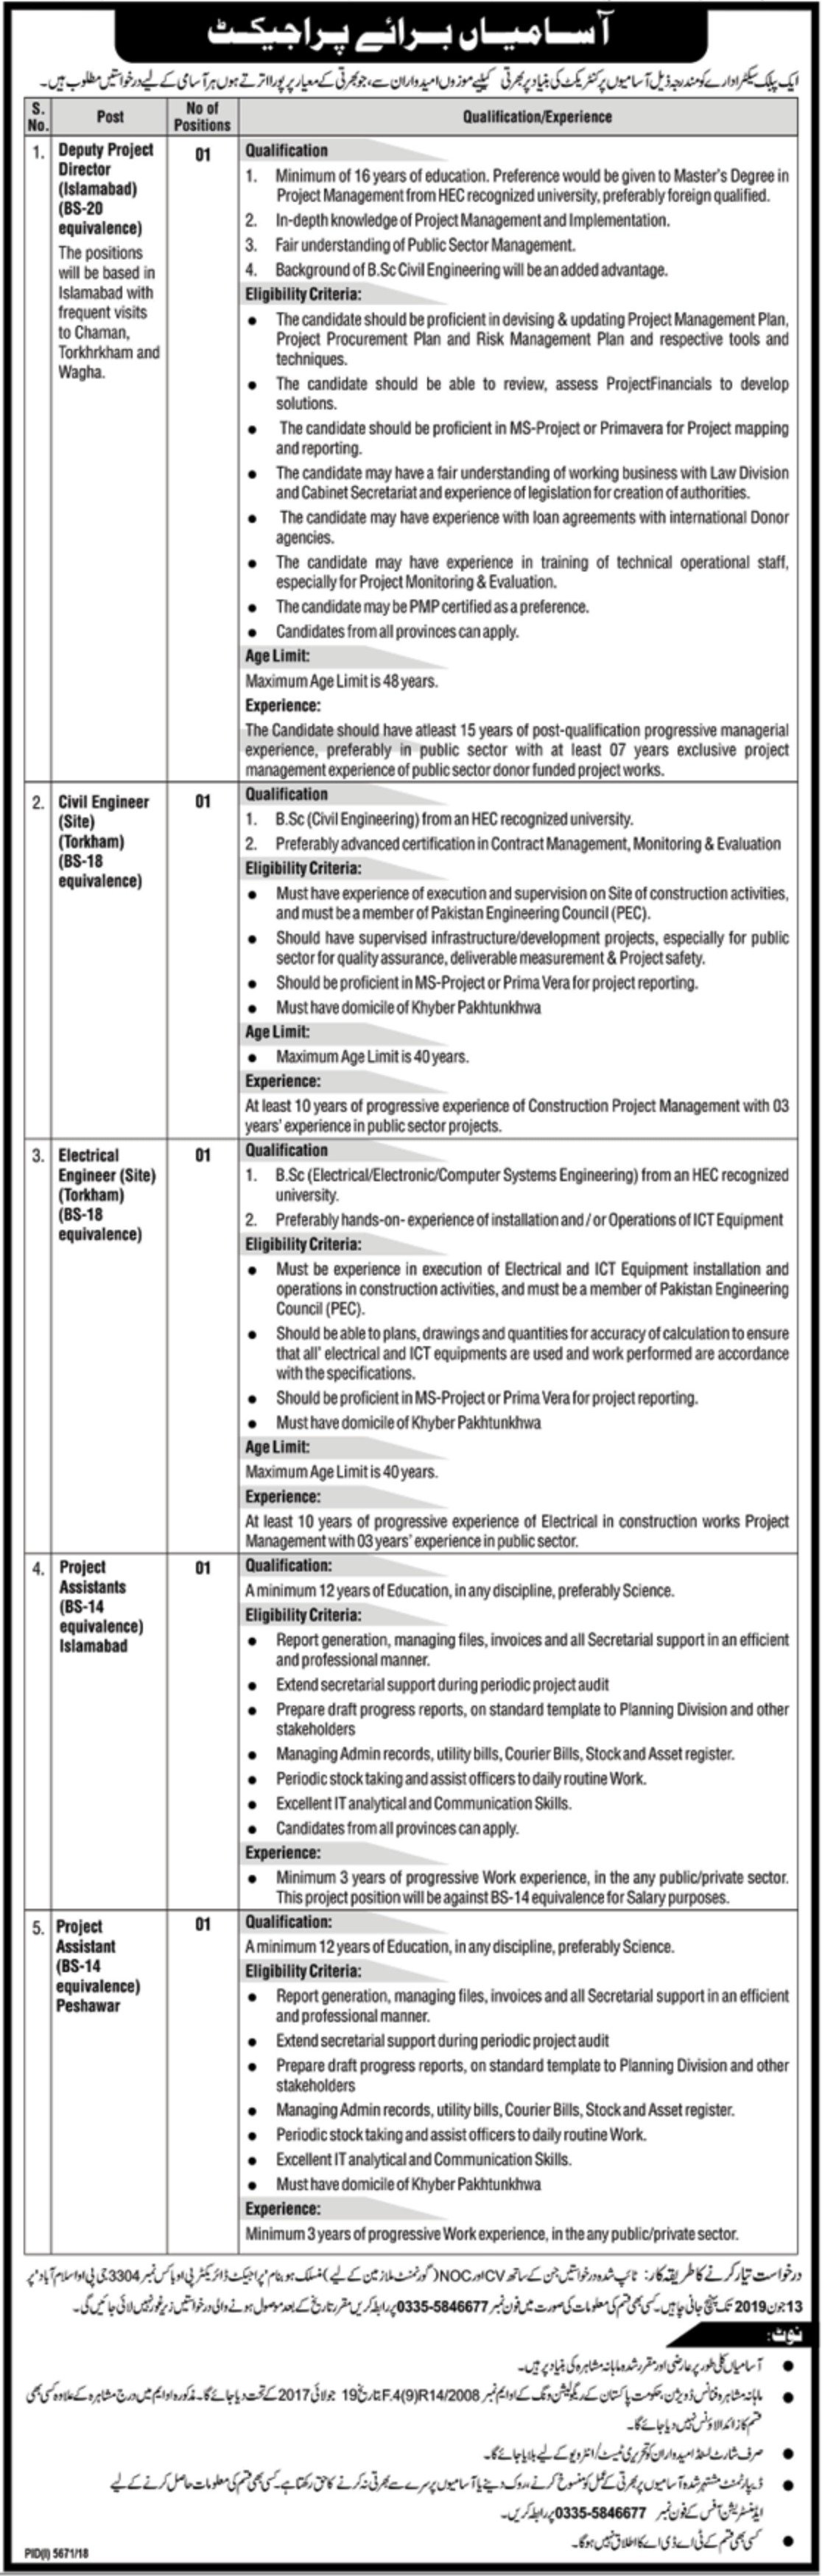 Public Sector Organization Jobs 2019 P.O.Box 3304 Islamabad